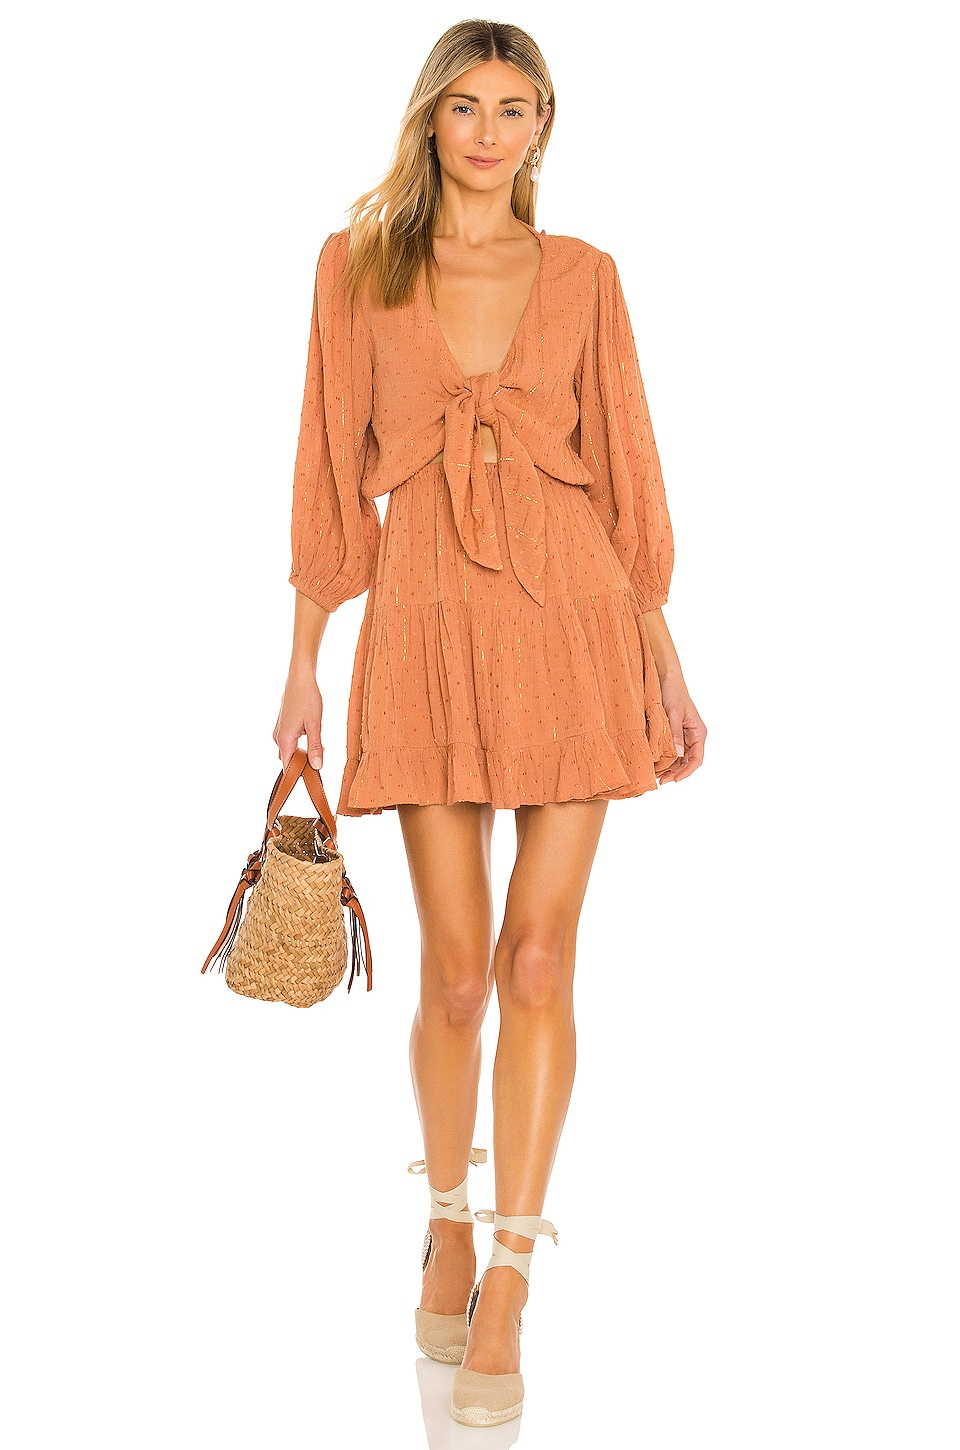 L*SPACE Stay Golden Dress in Putty